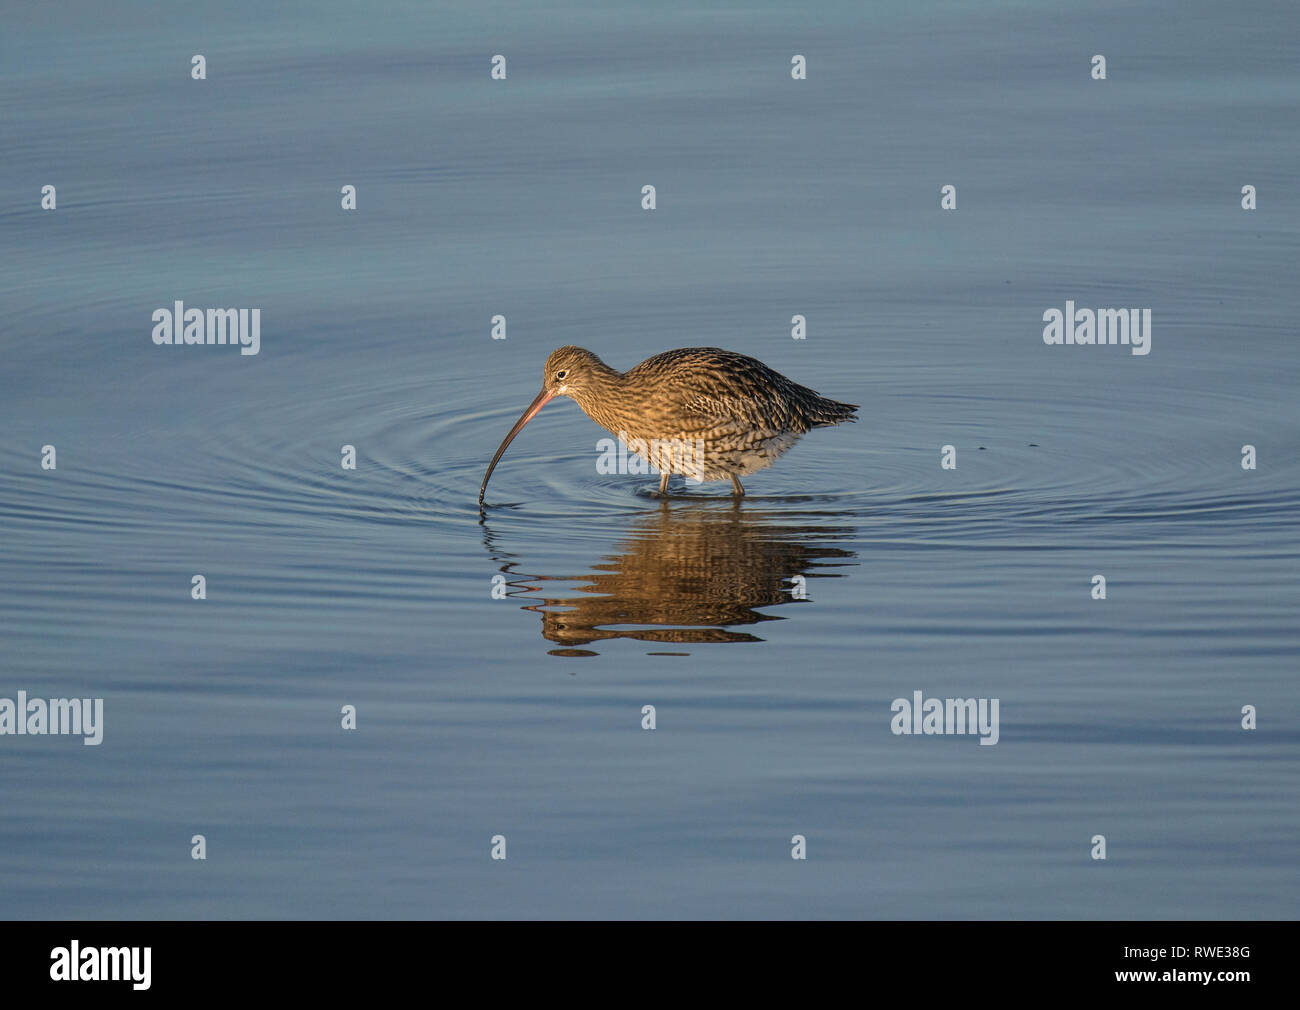 Curlew, Numenius arquata, feeding in shallow water, Morecambe Bay, Lancashire, UK Stock Photo